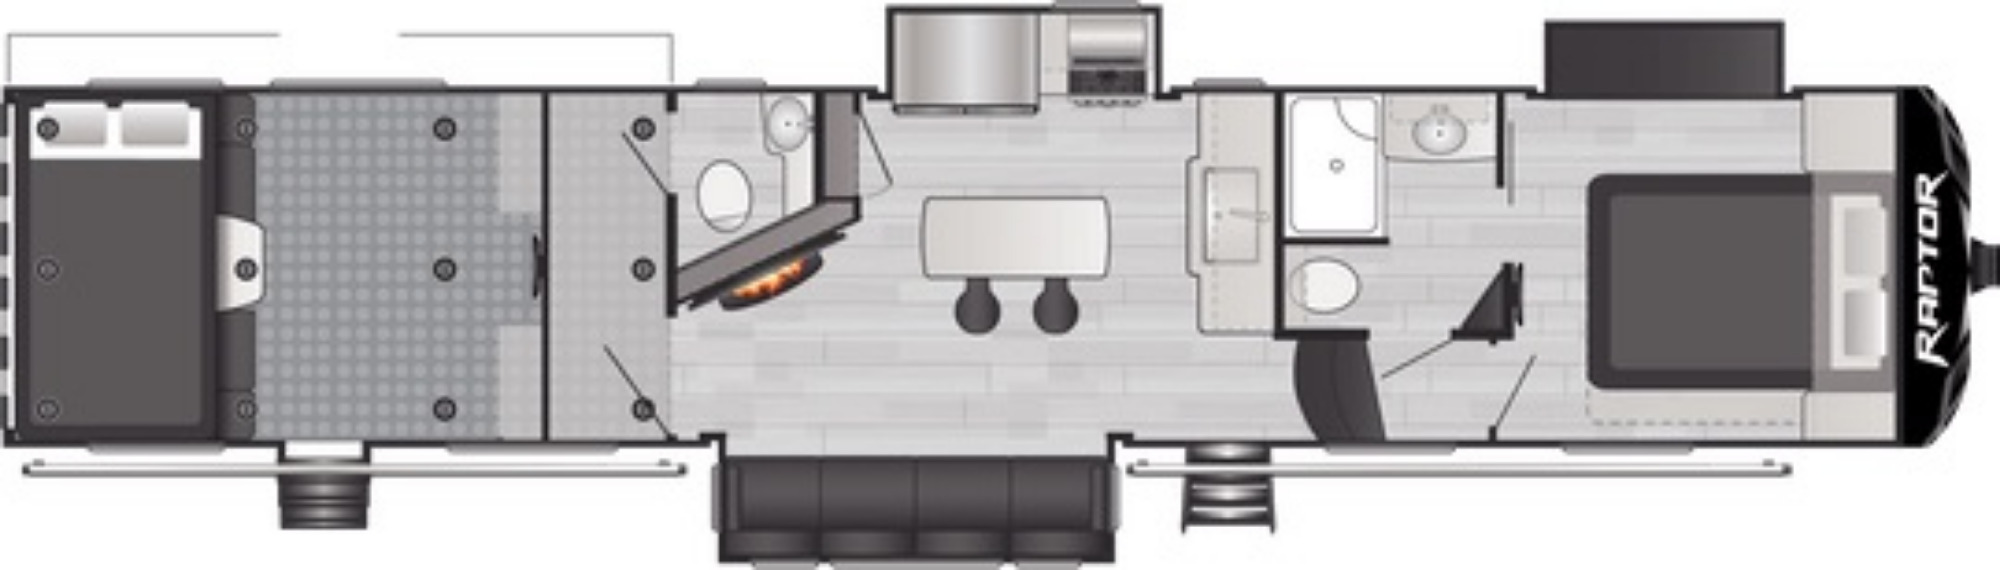 View Floor Plan for 2021 KEYSTONE RAPTOR 415